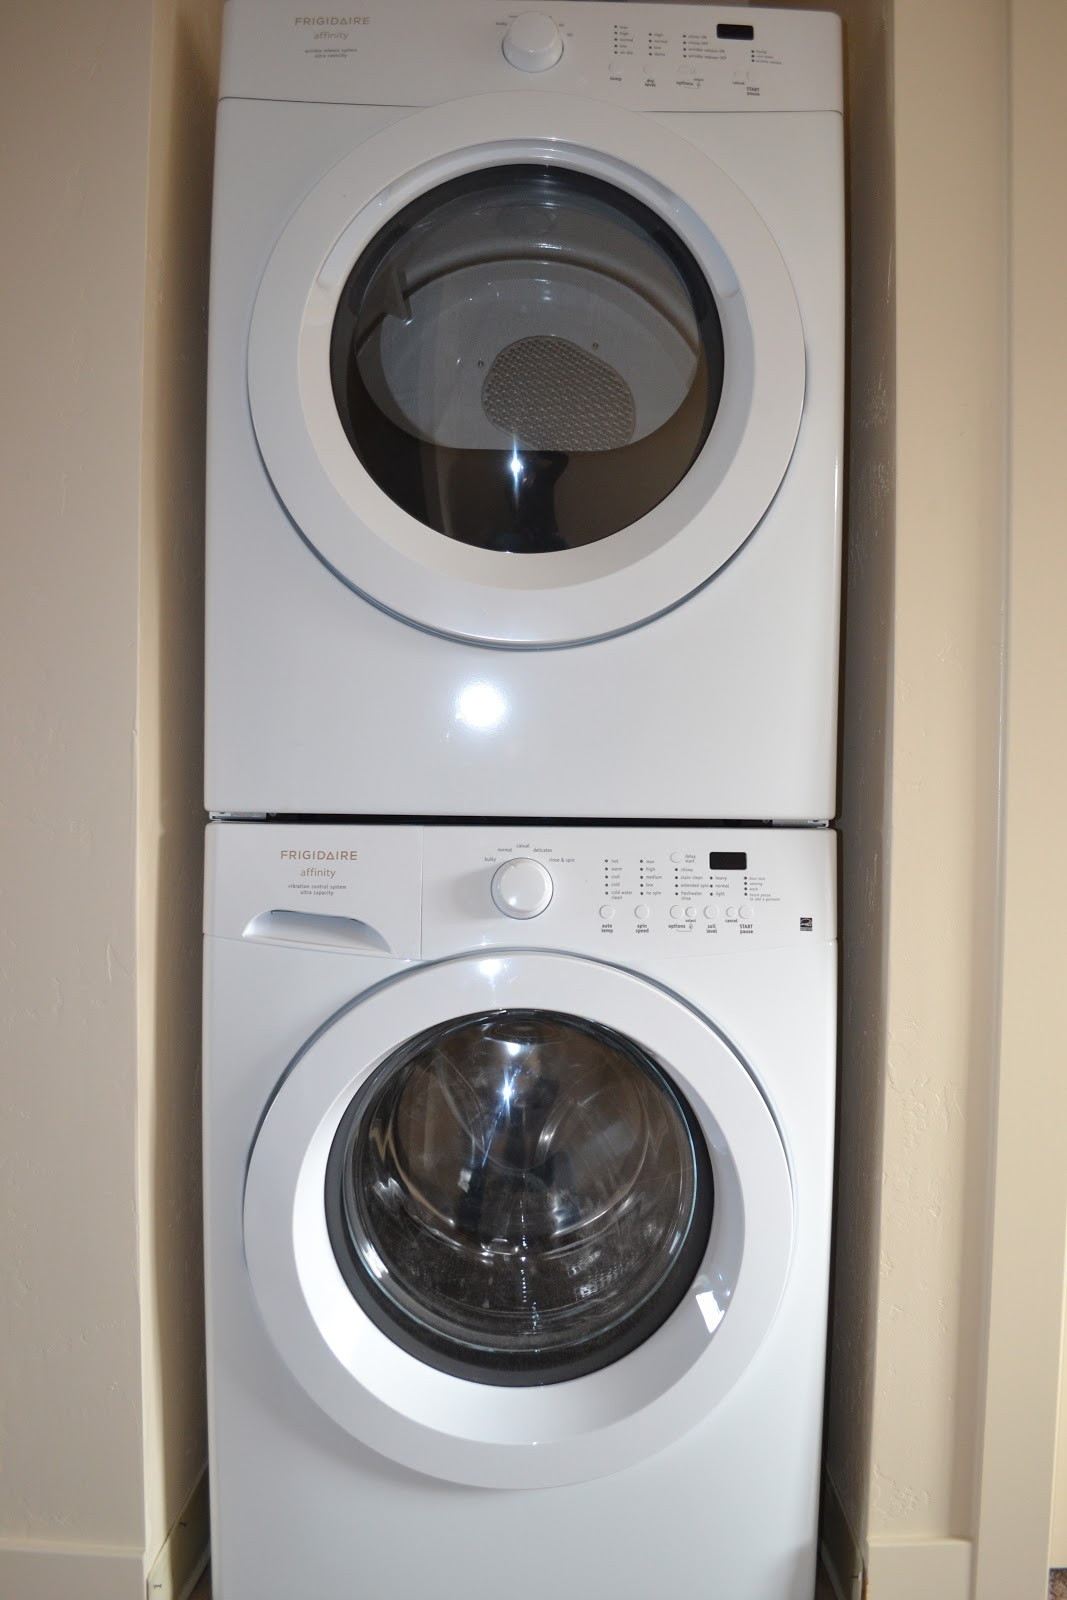 apartment size washer dryer sets compact washer dryer combos for